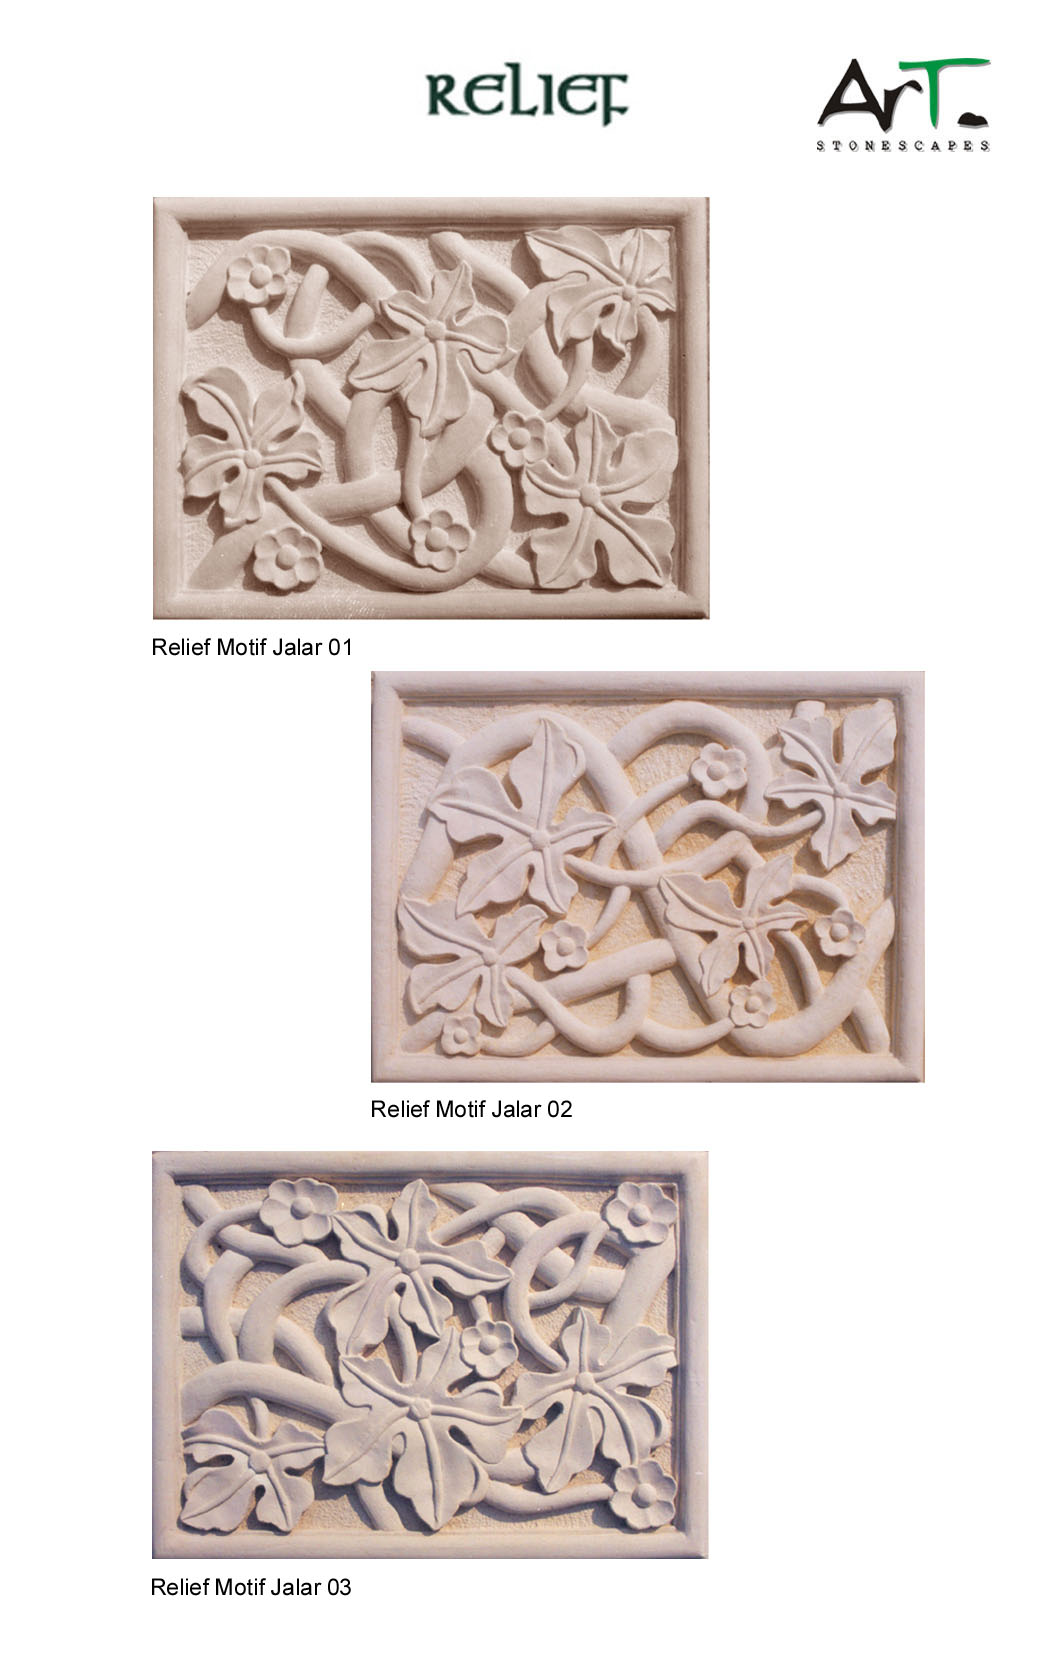 Bali Carving Stone Indonesia Wall Carvings